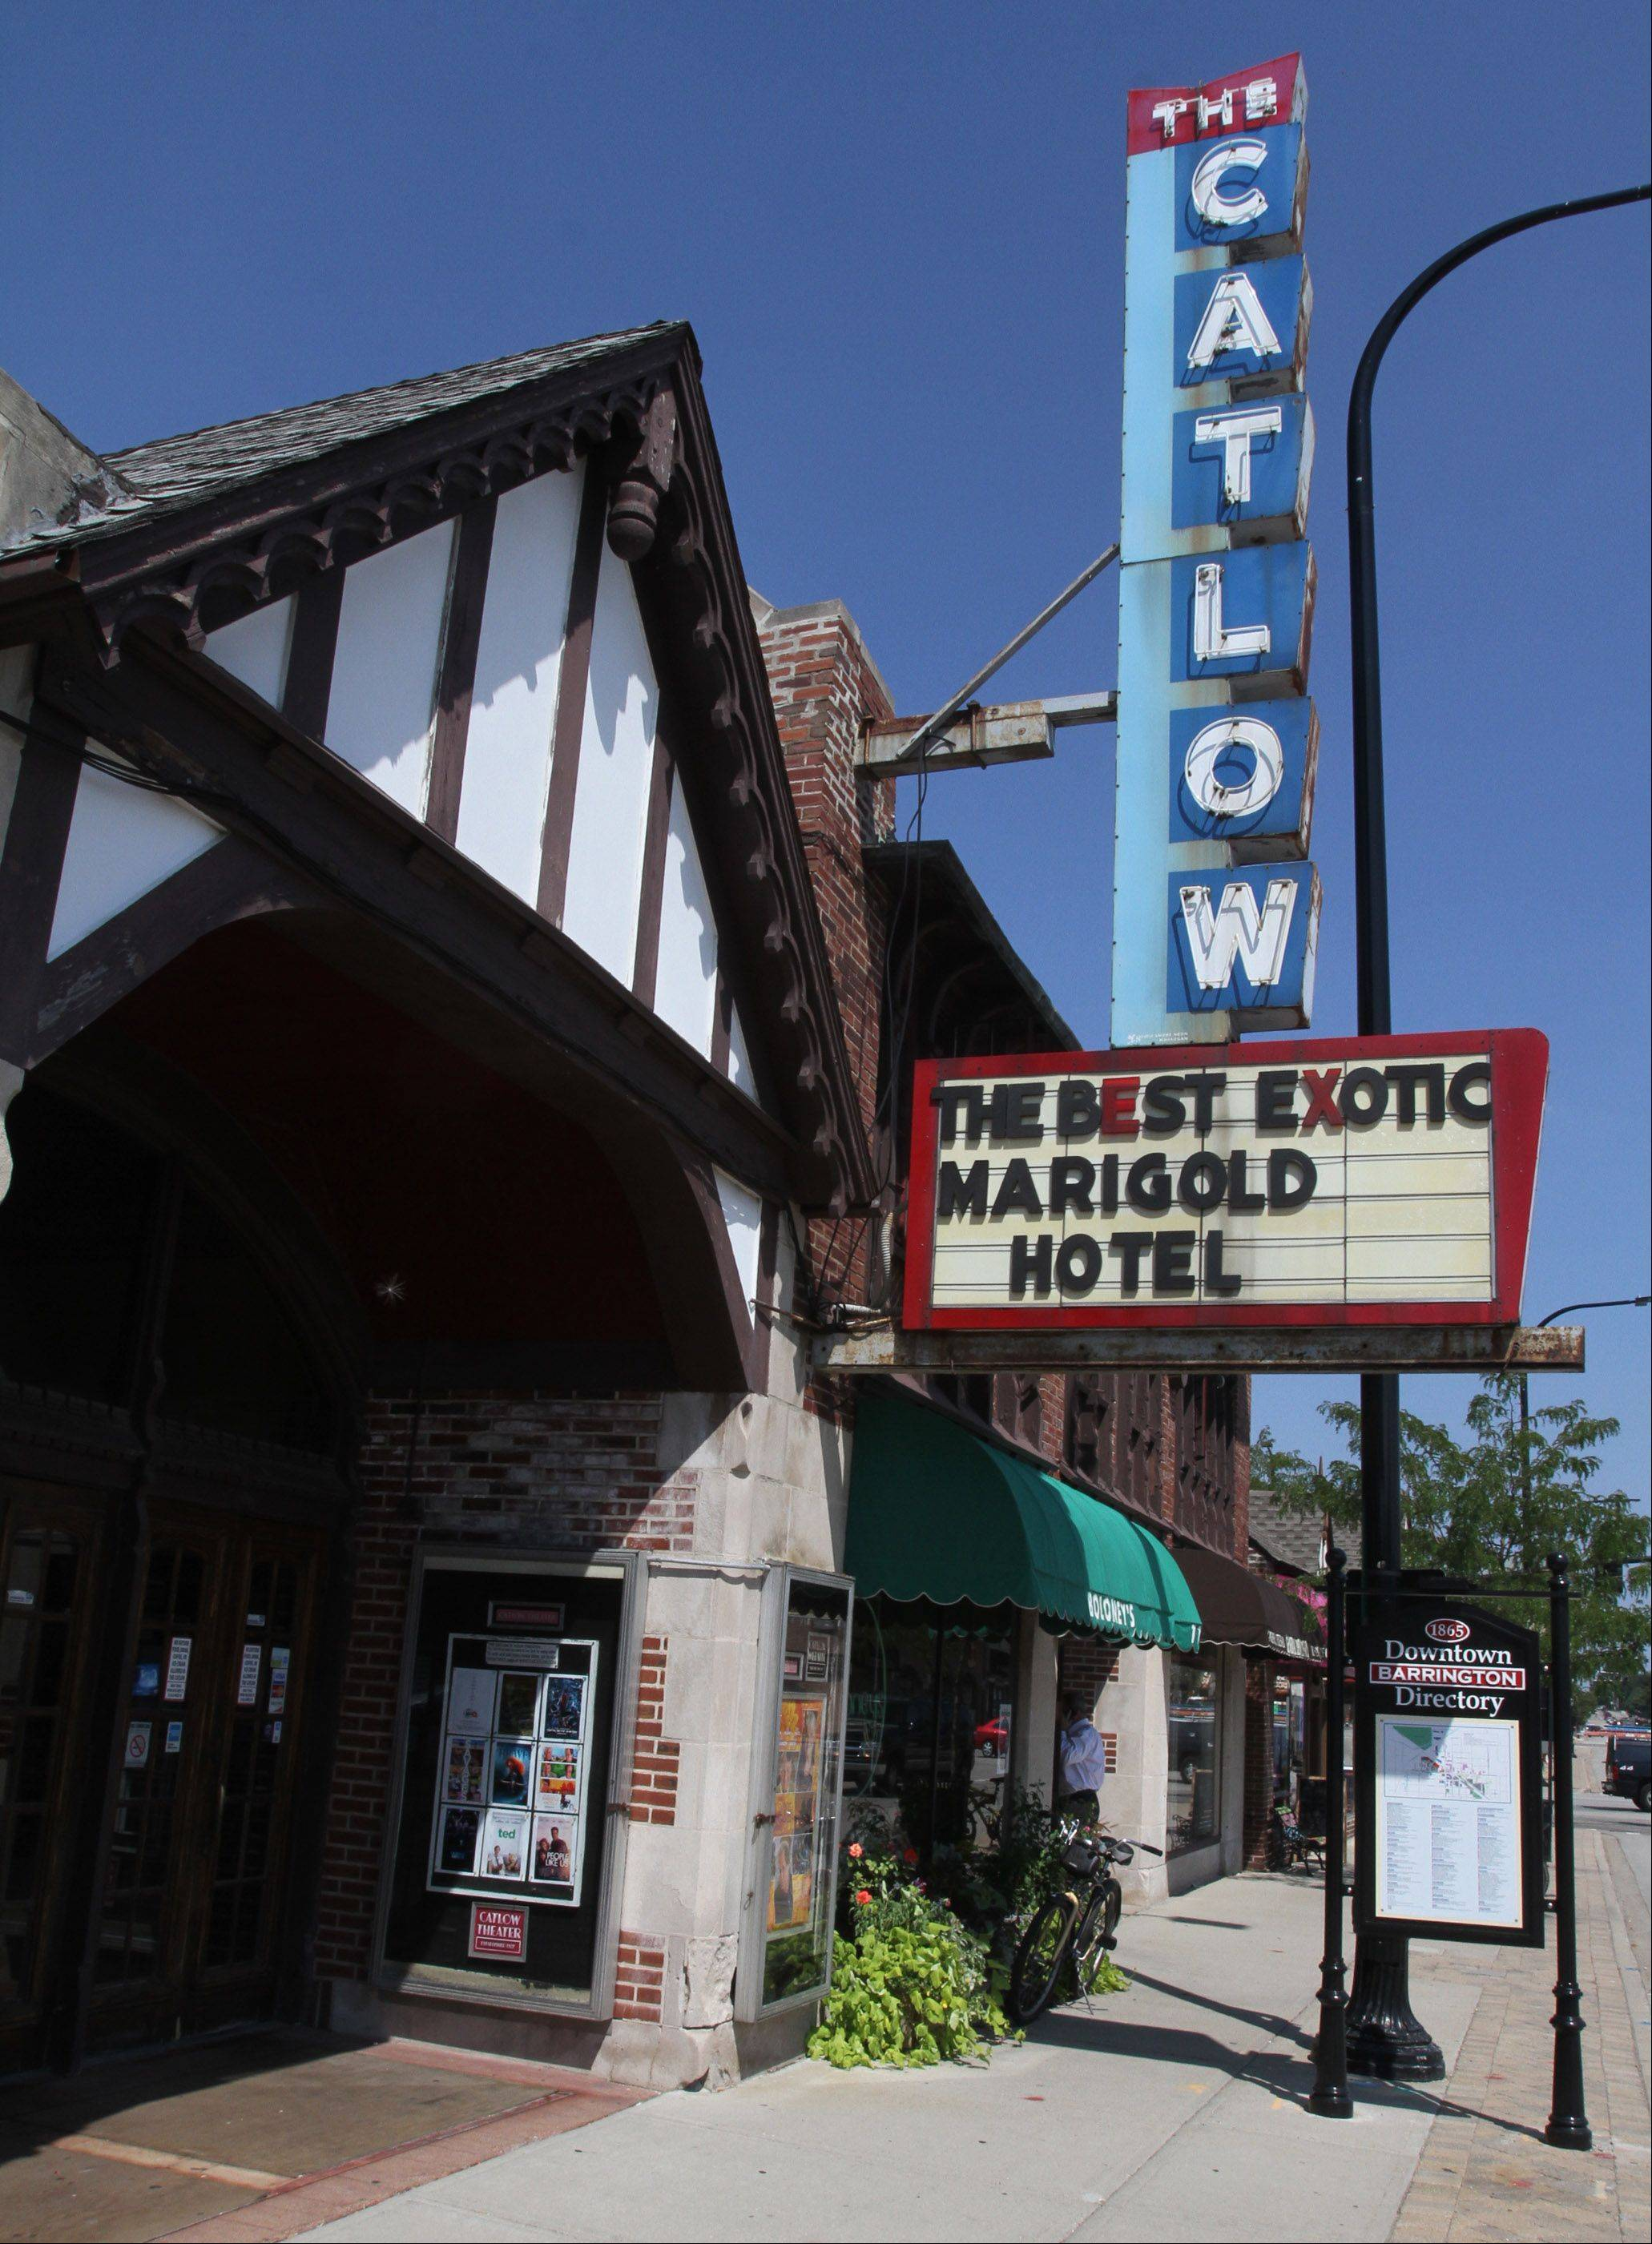 Supporters have raised the $100,000 The Catlow theater in Barrington needs to make the necessary conversion to digital projection in order to stay in business for more than just another year.